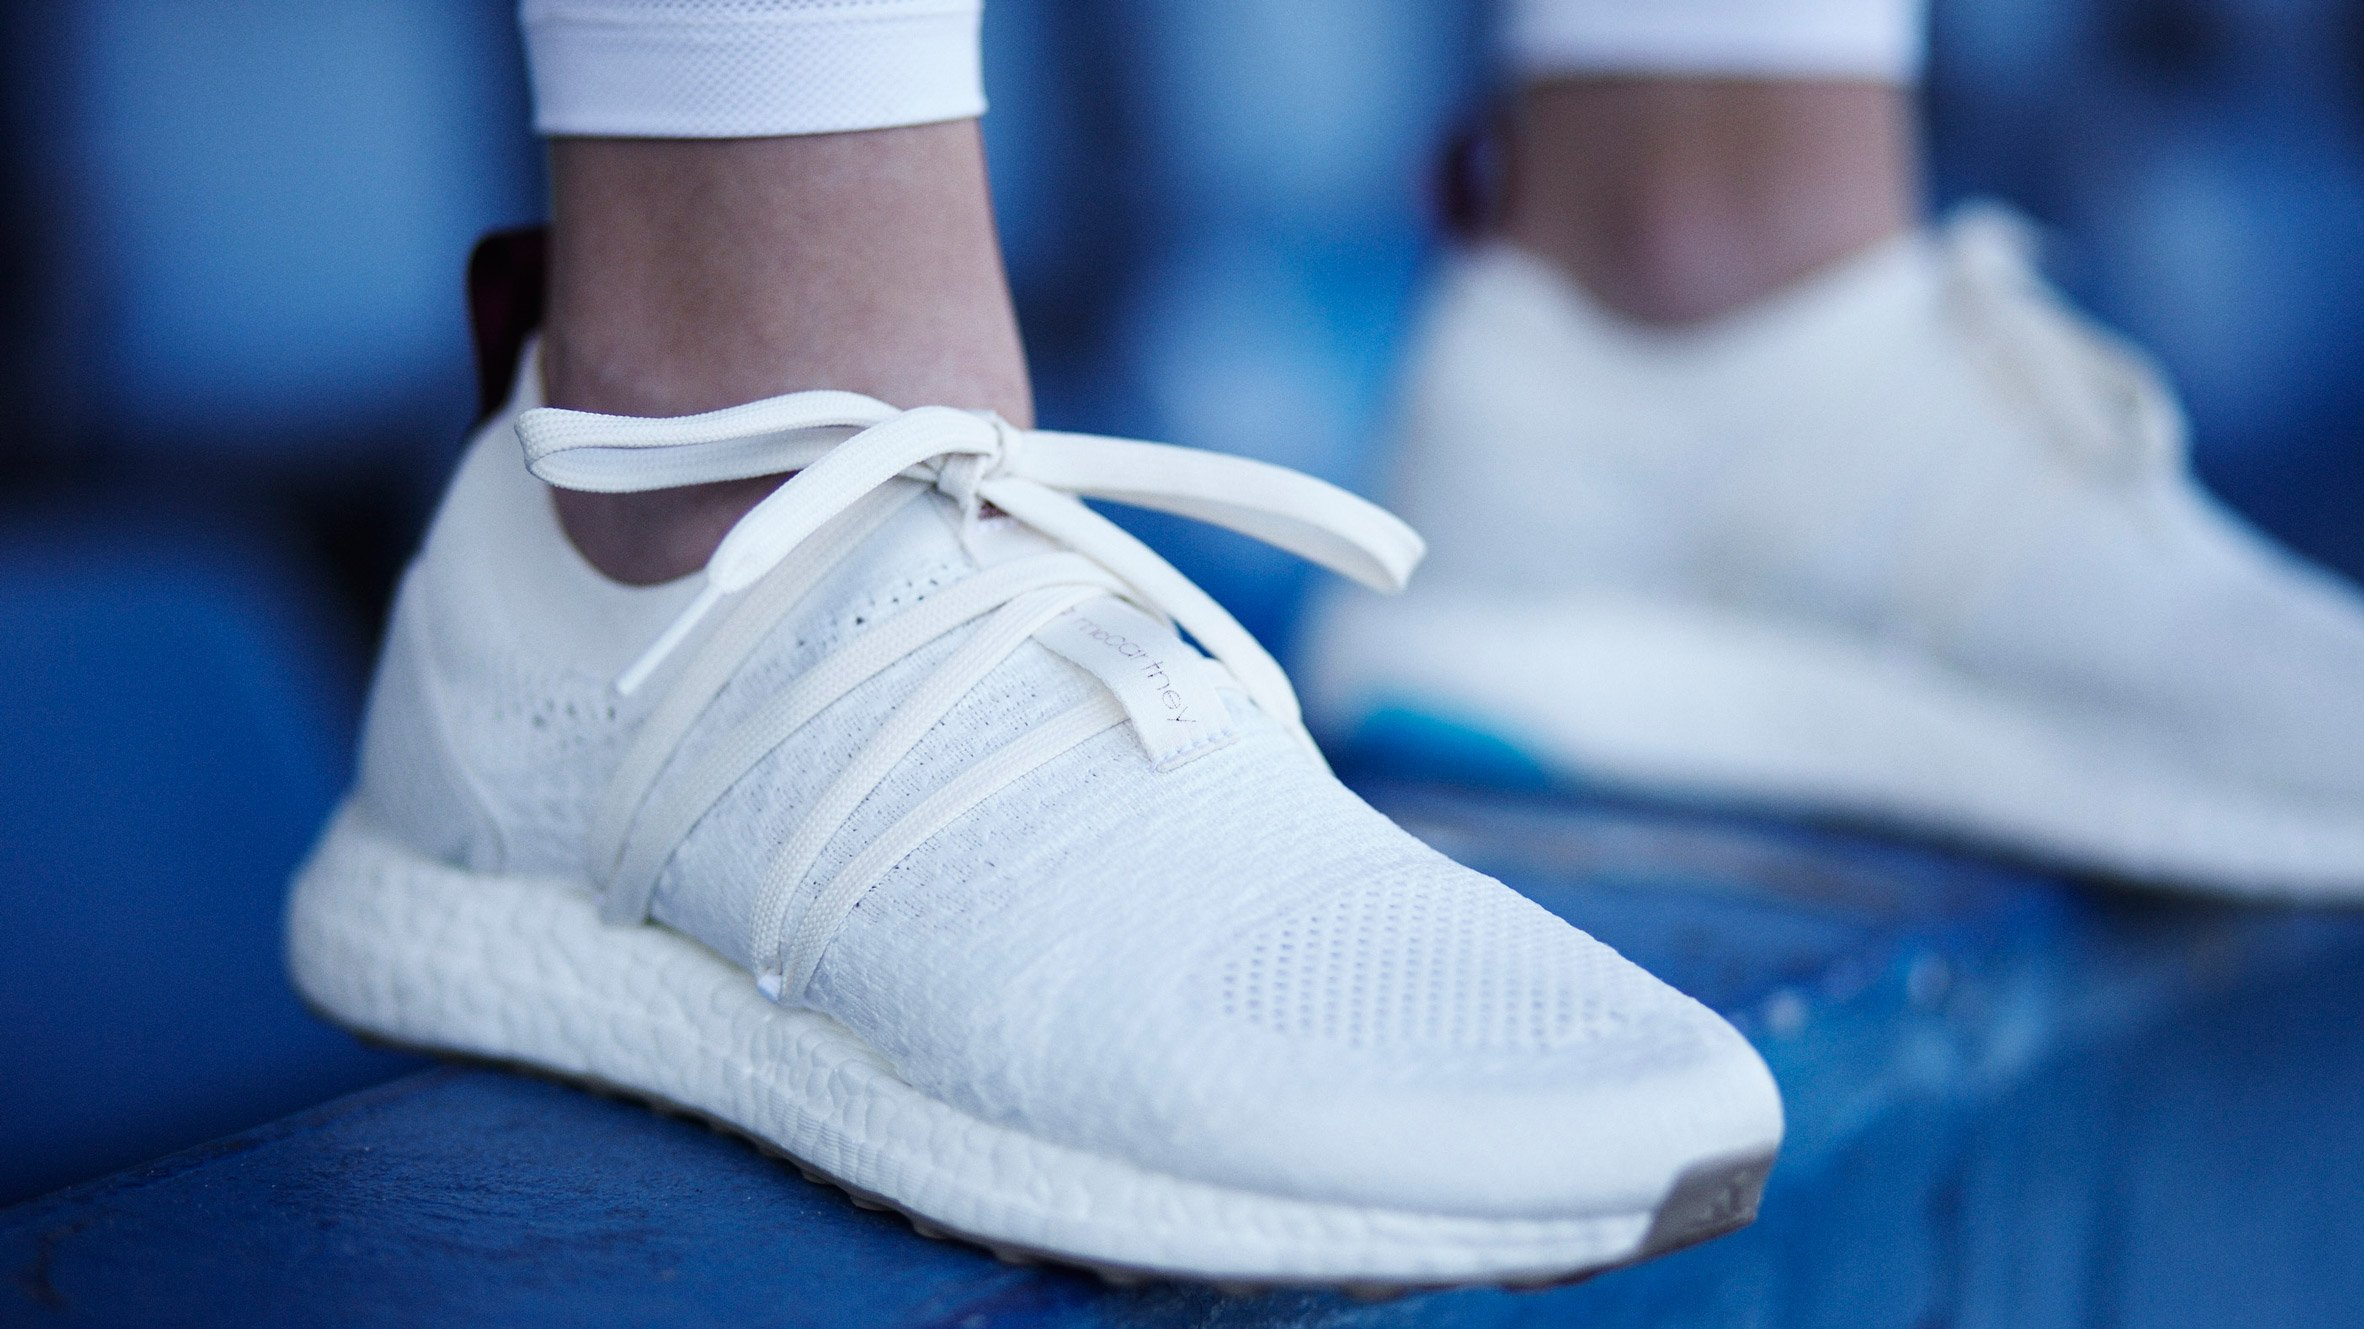 bbf5ca4c9b7 Stella McCartney and Adidas unveil Parley Ultra Boost X trainers made from  ocean plastic